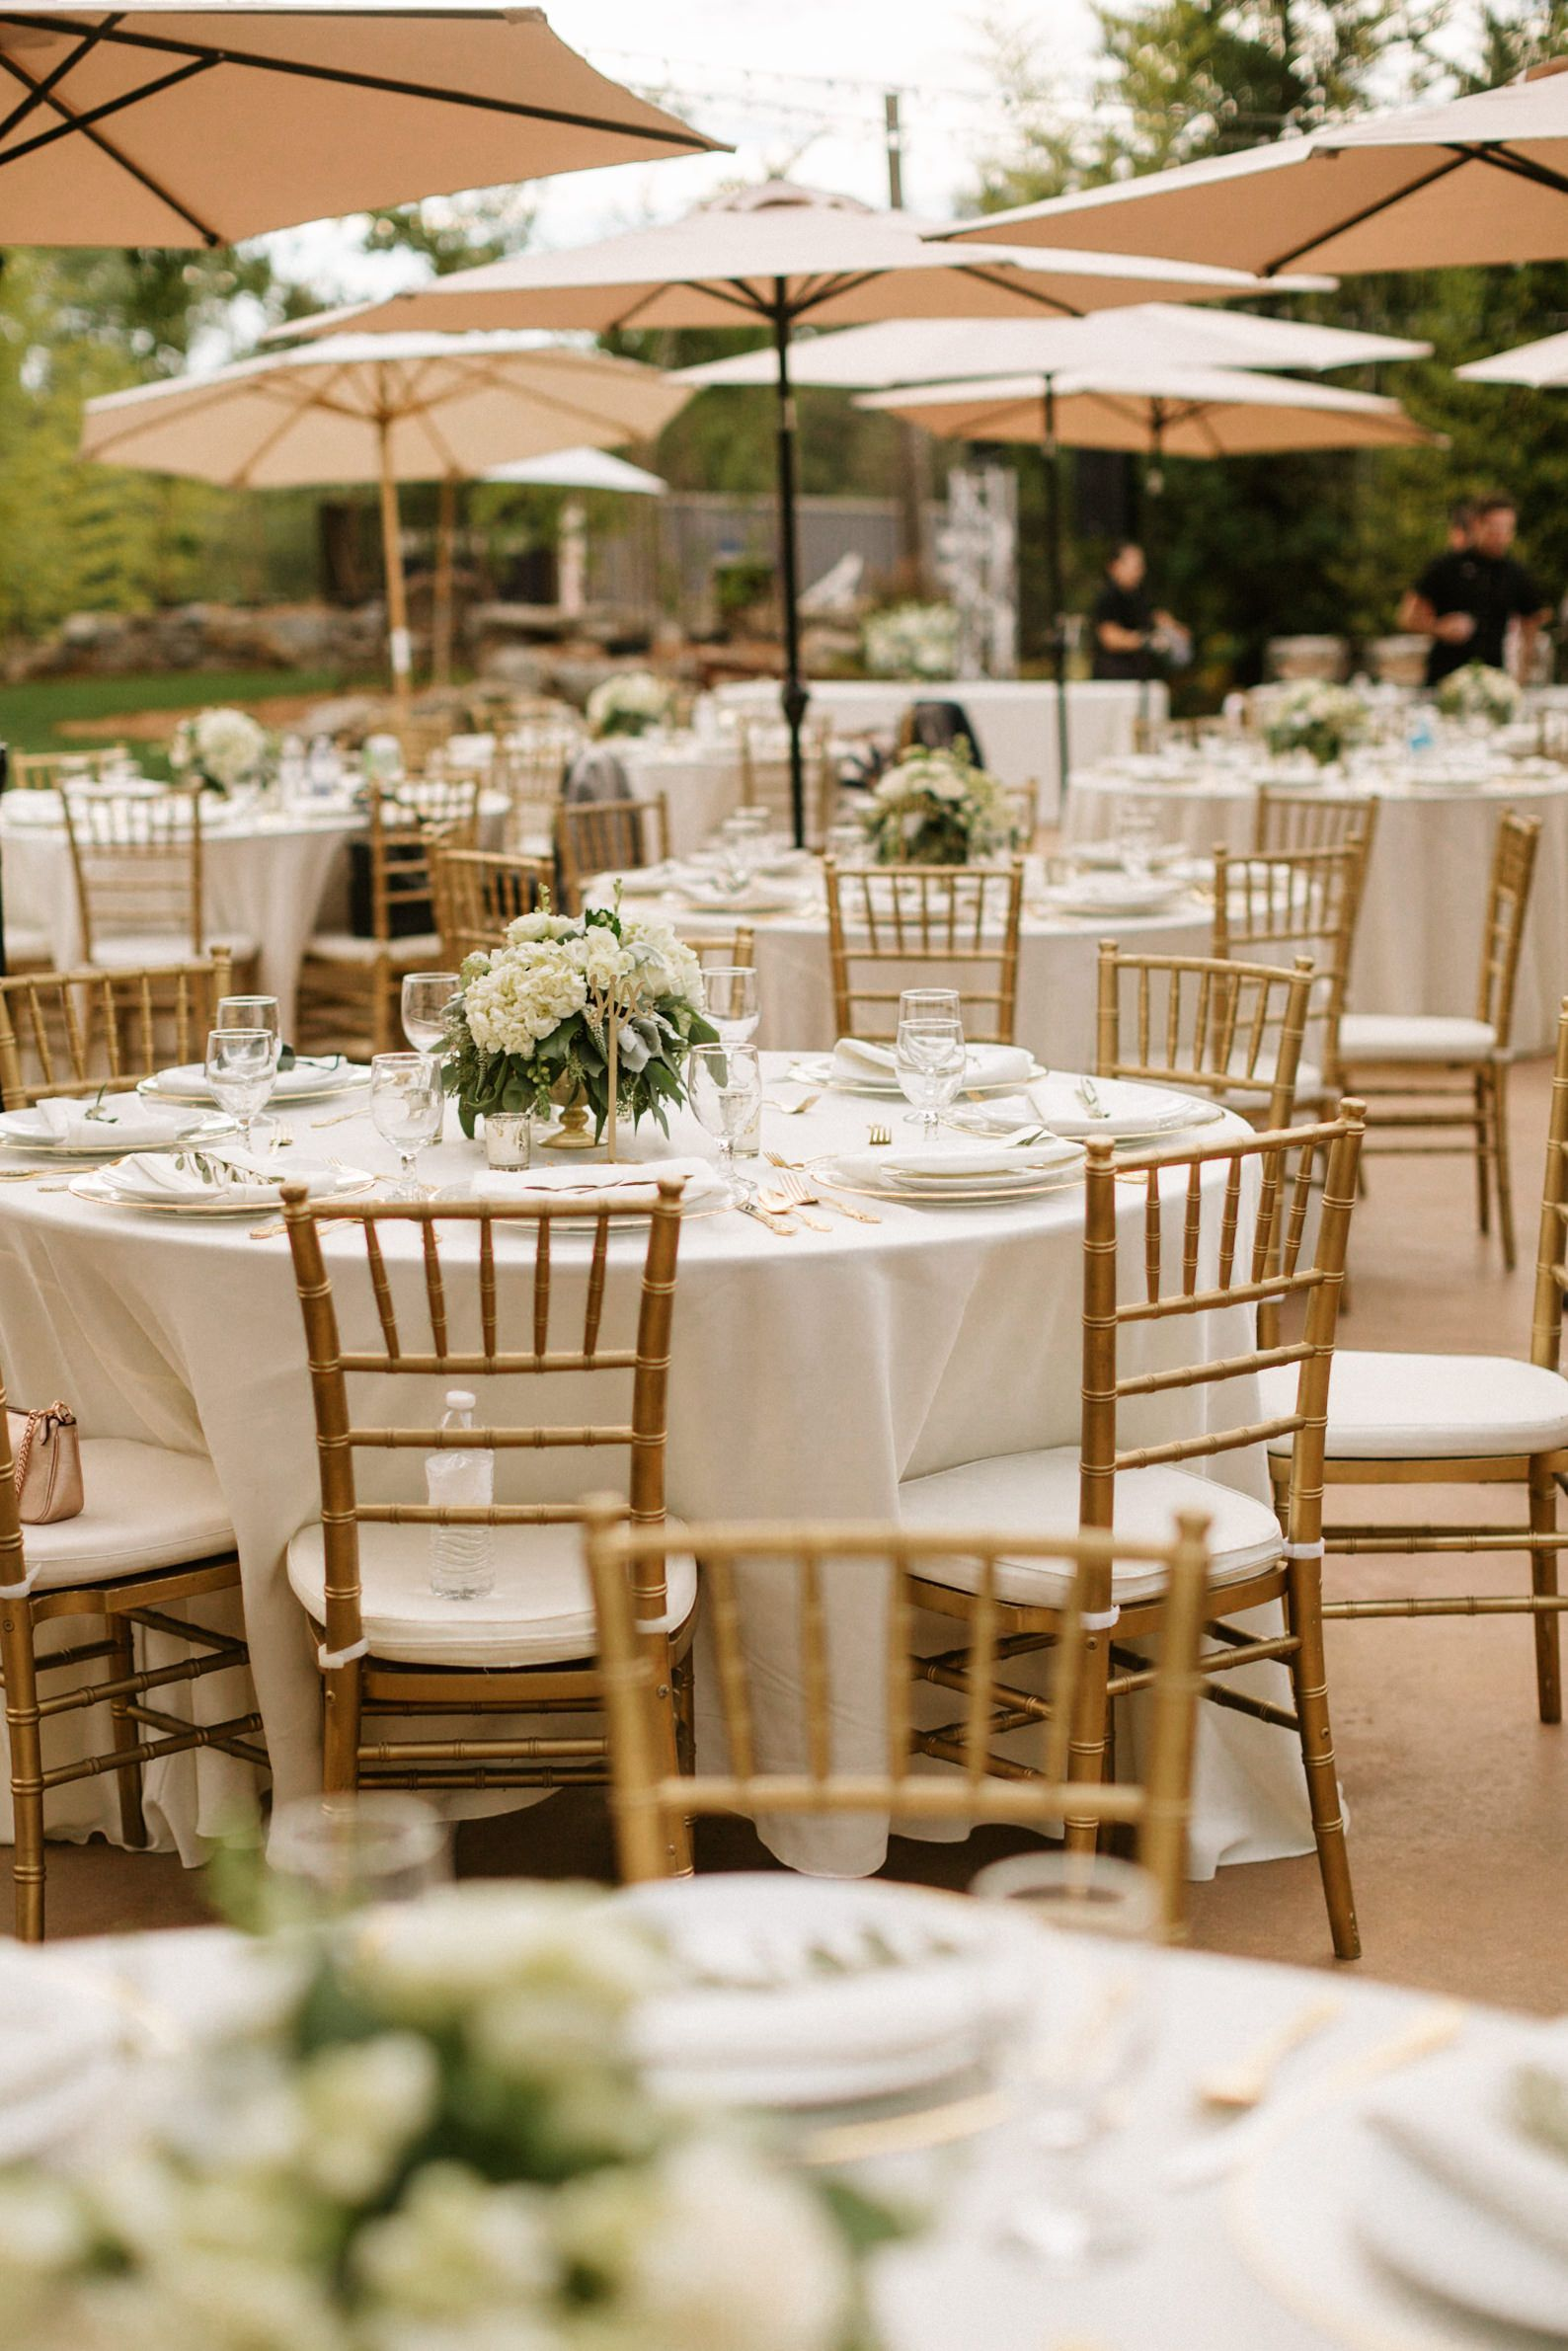 Pin by Events & Affairs on Gold Hill Gardens, Newcastle | Pinterest ...